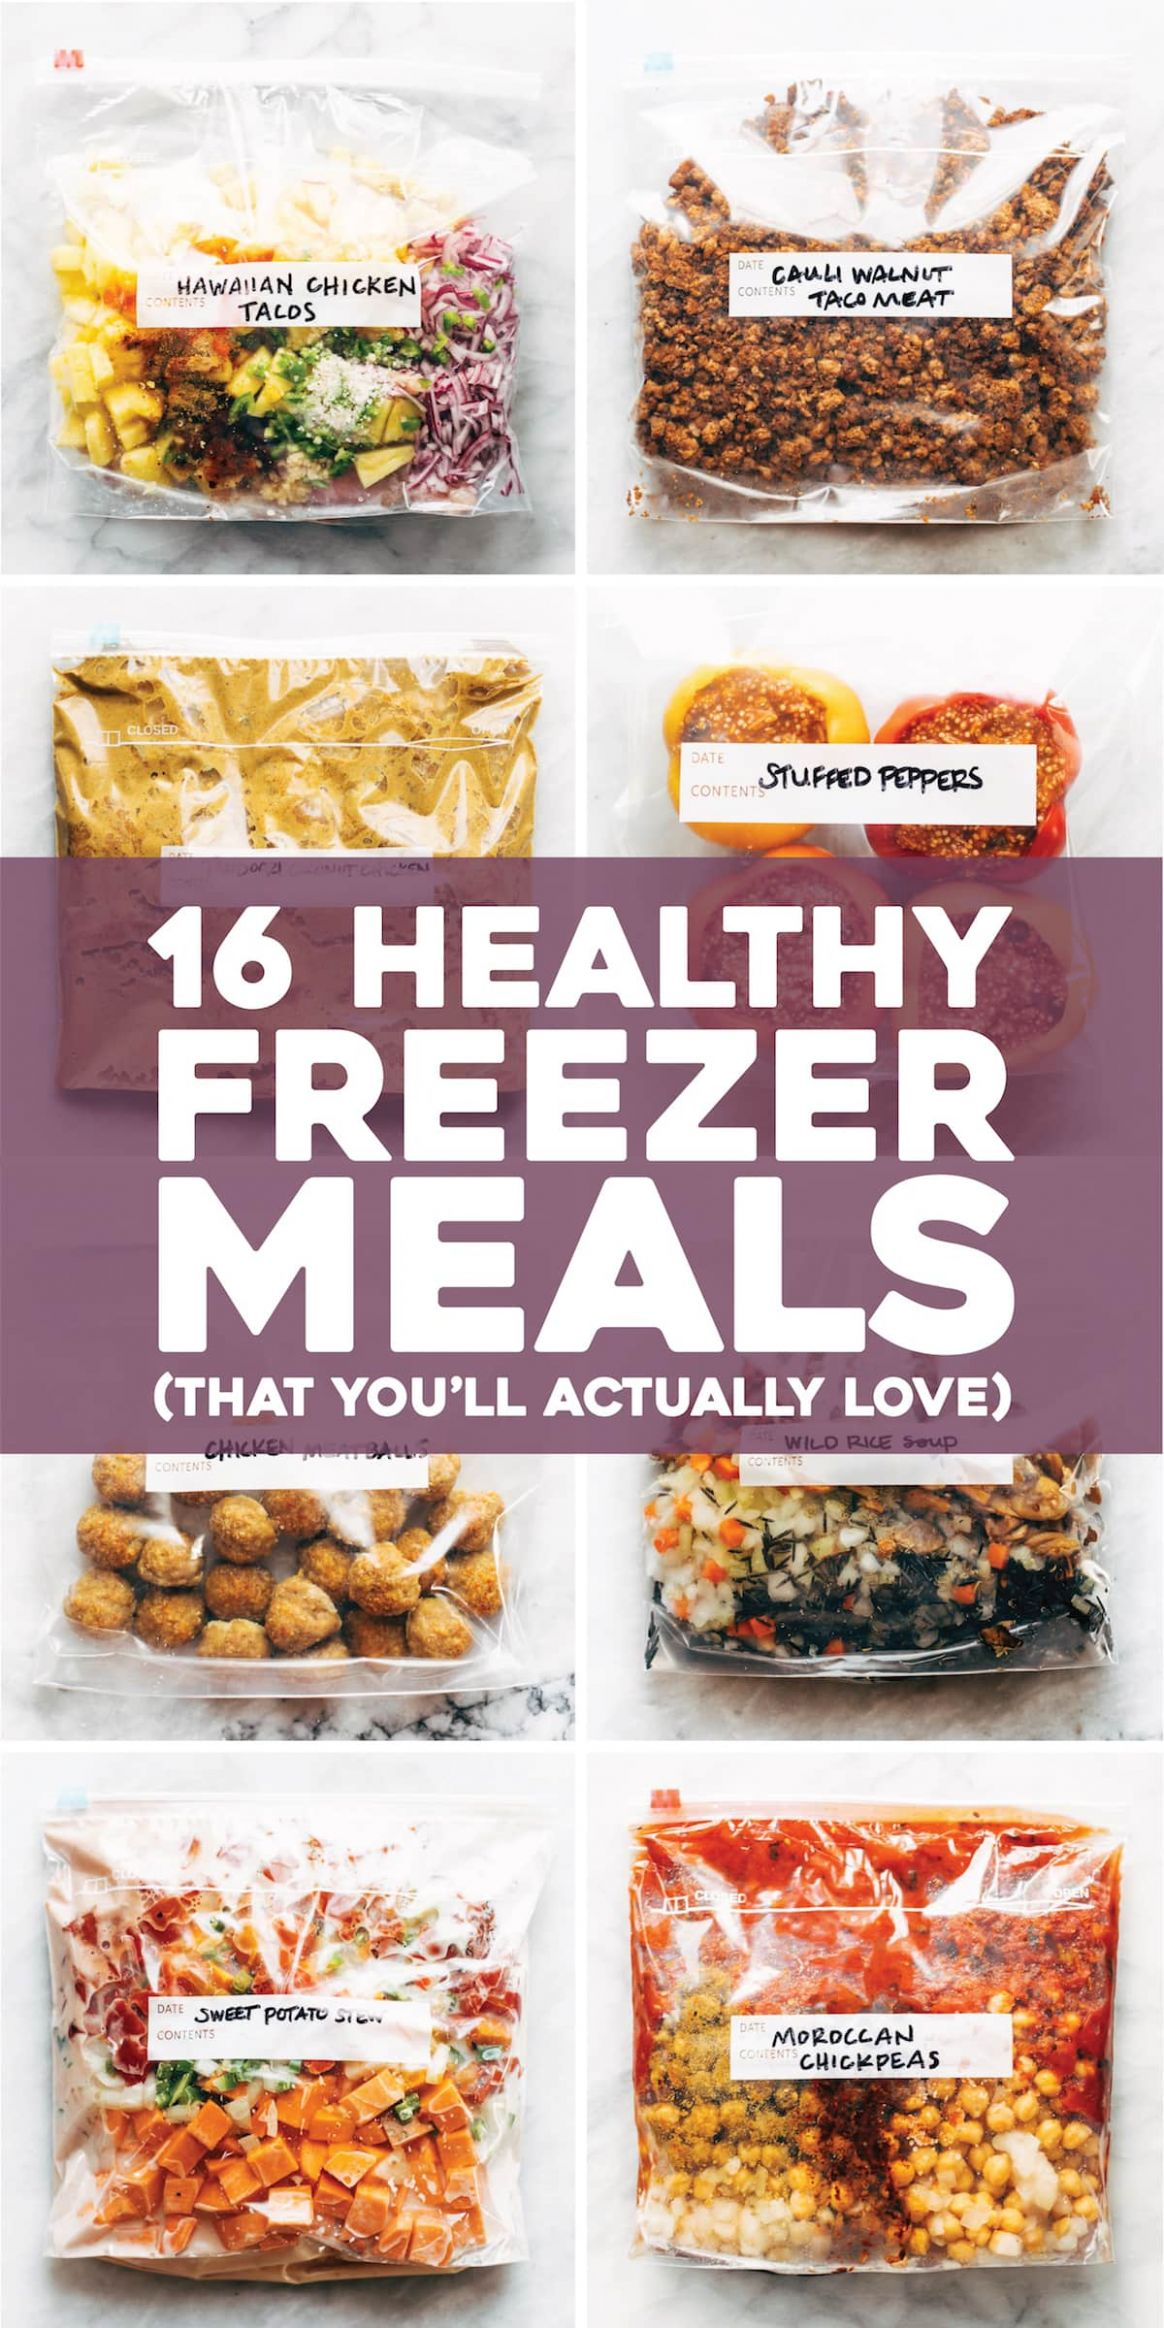 10 Healthy Freezer Meals (That You'll Actually Love) - Pinch of Yum